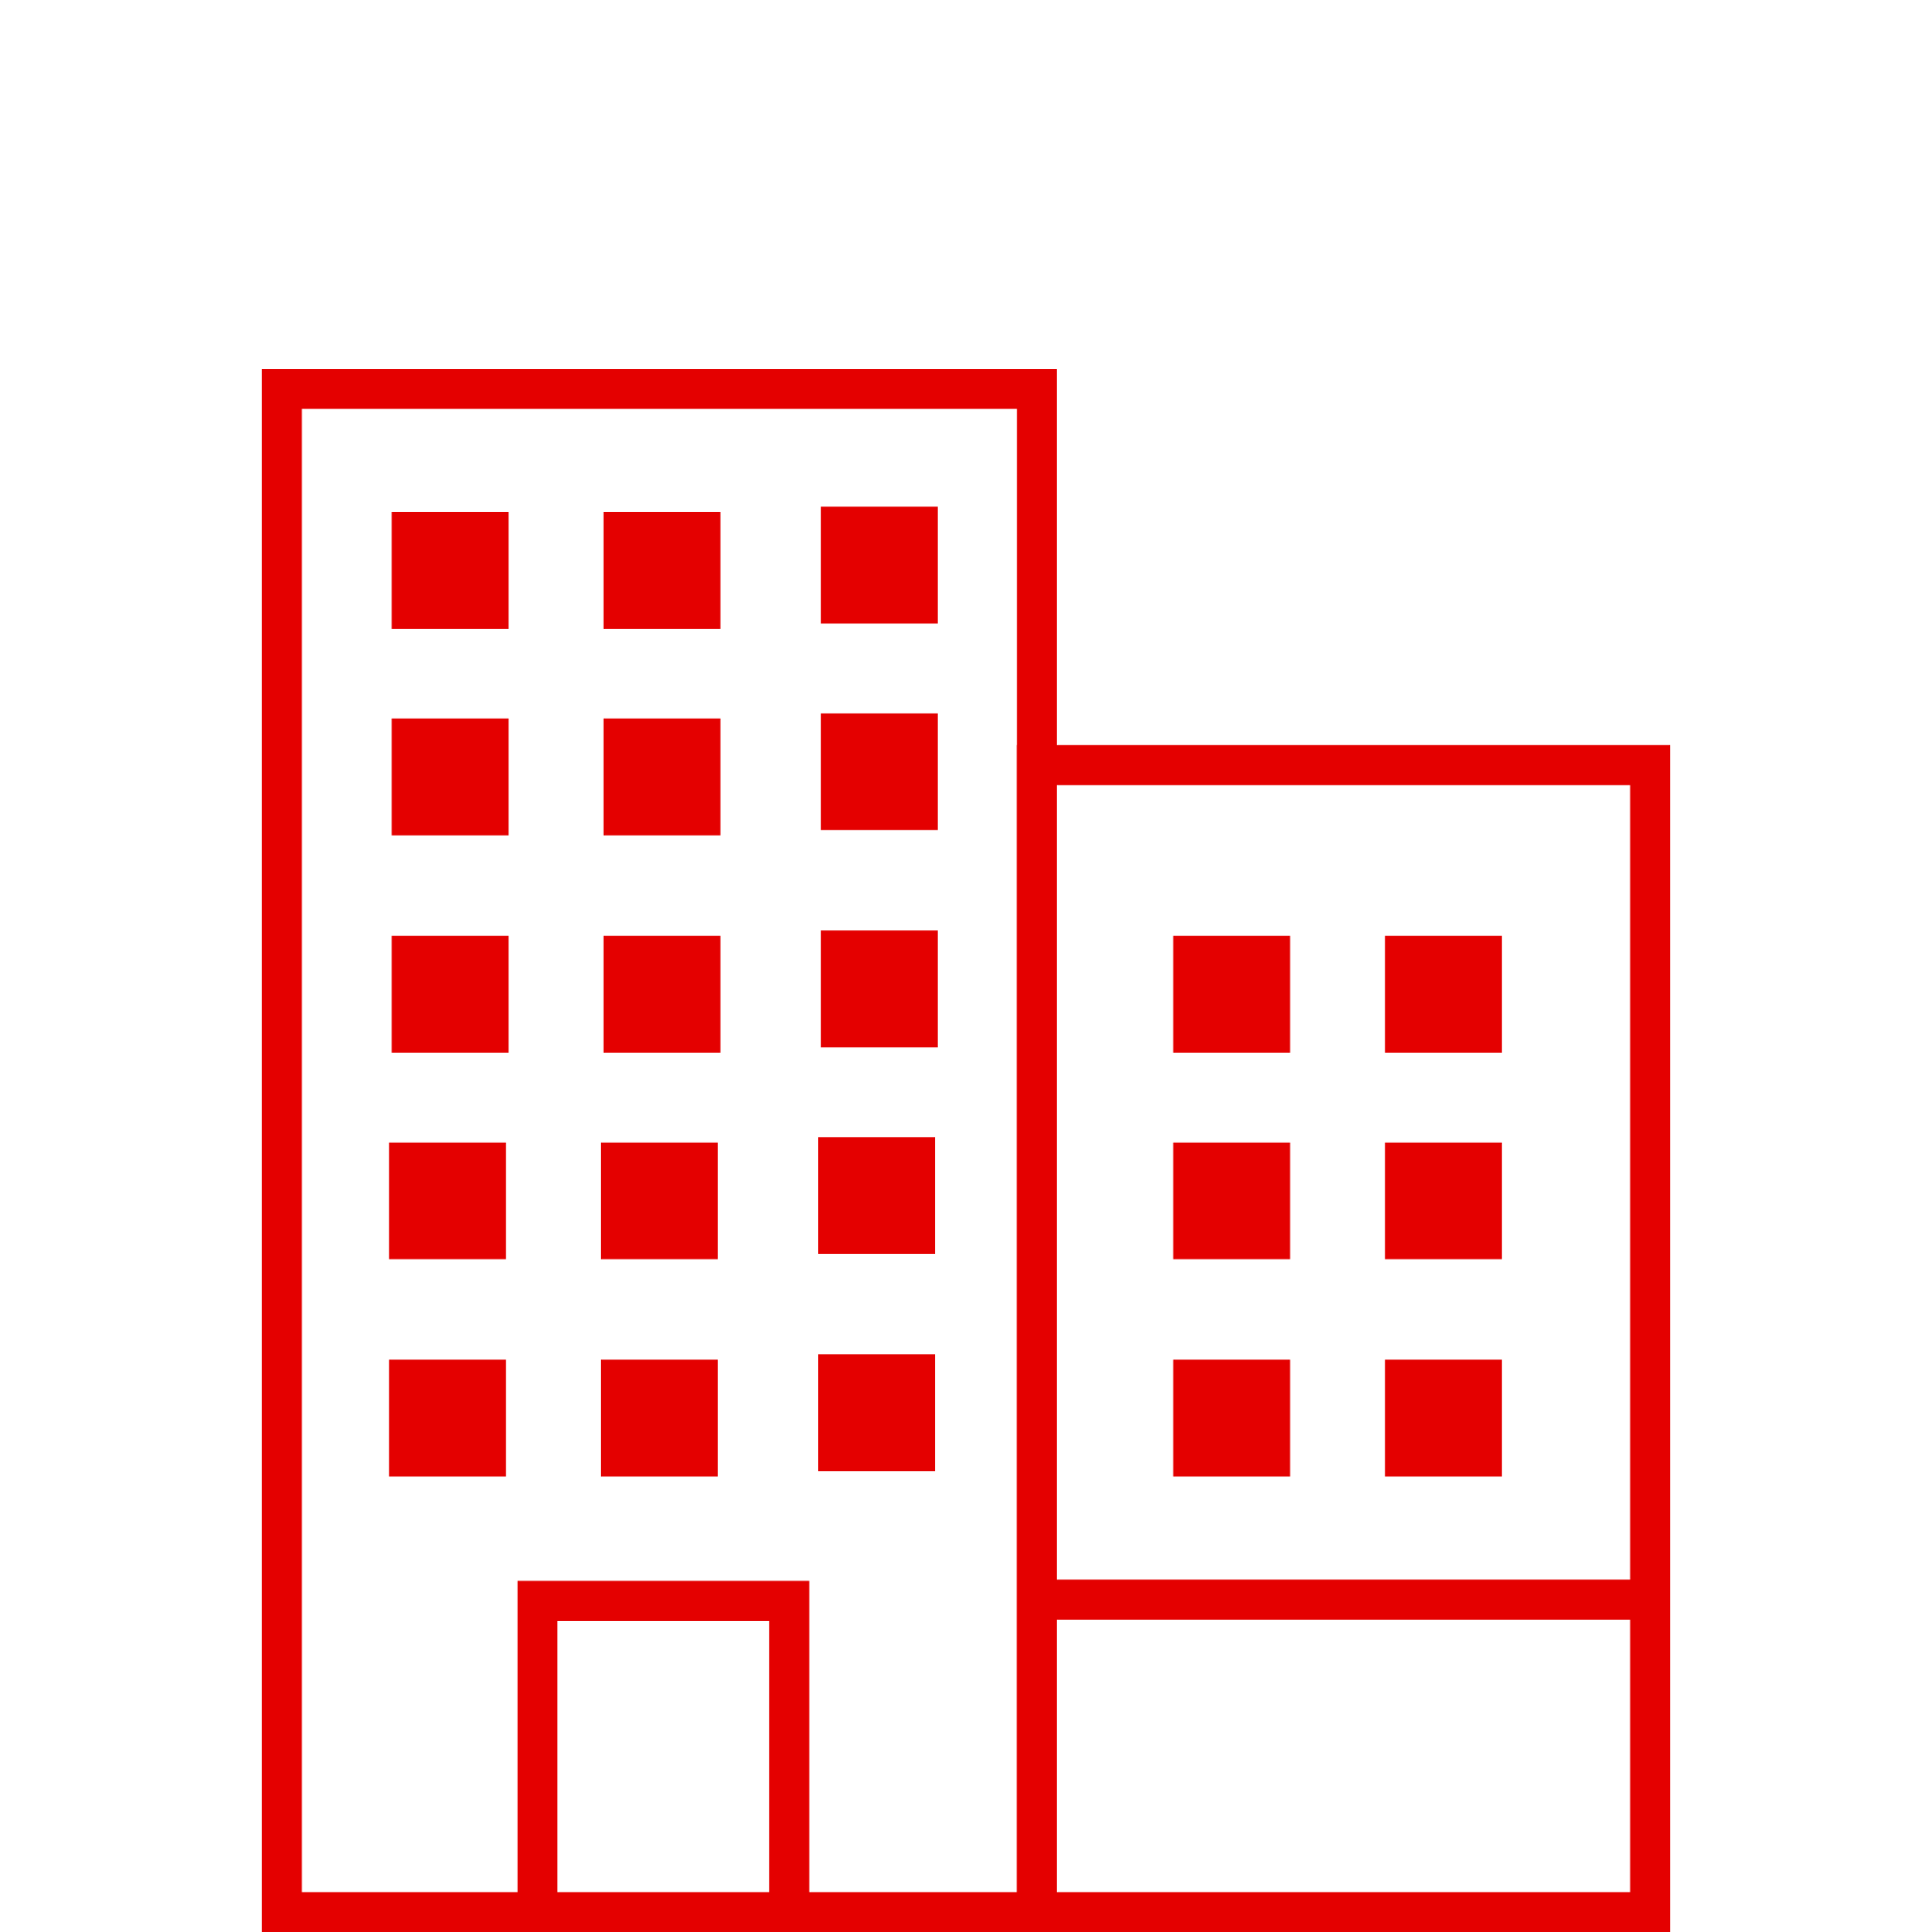 mid size company red icon